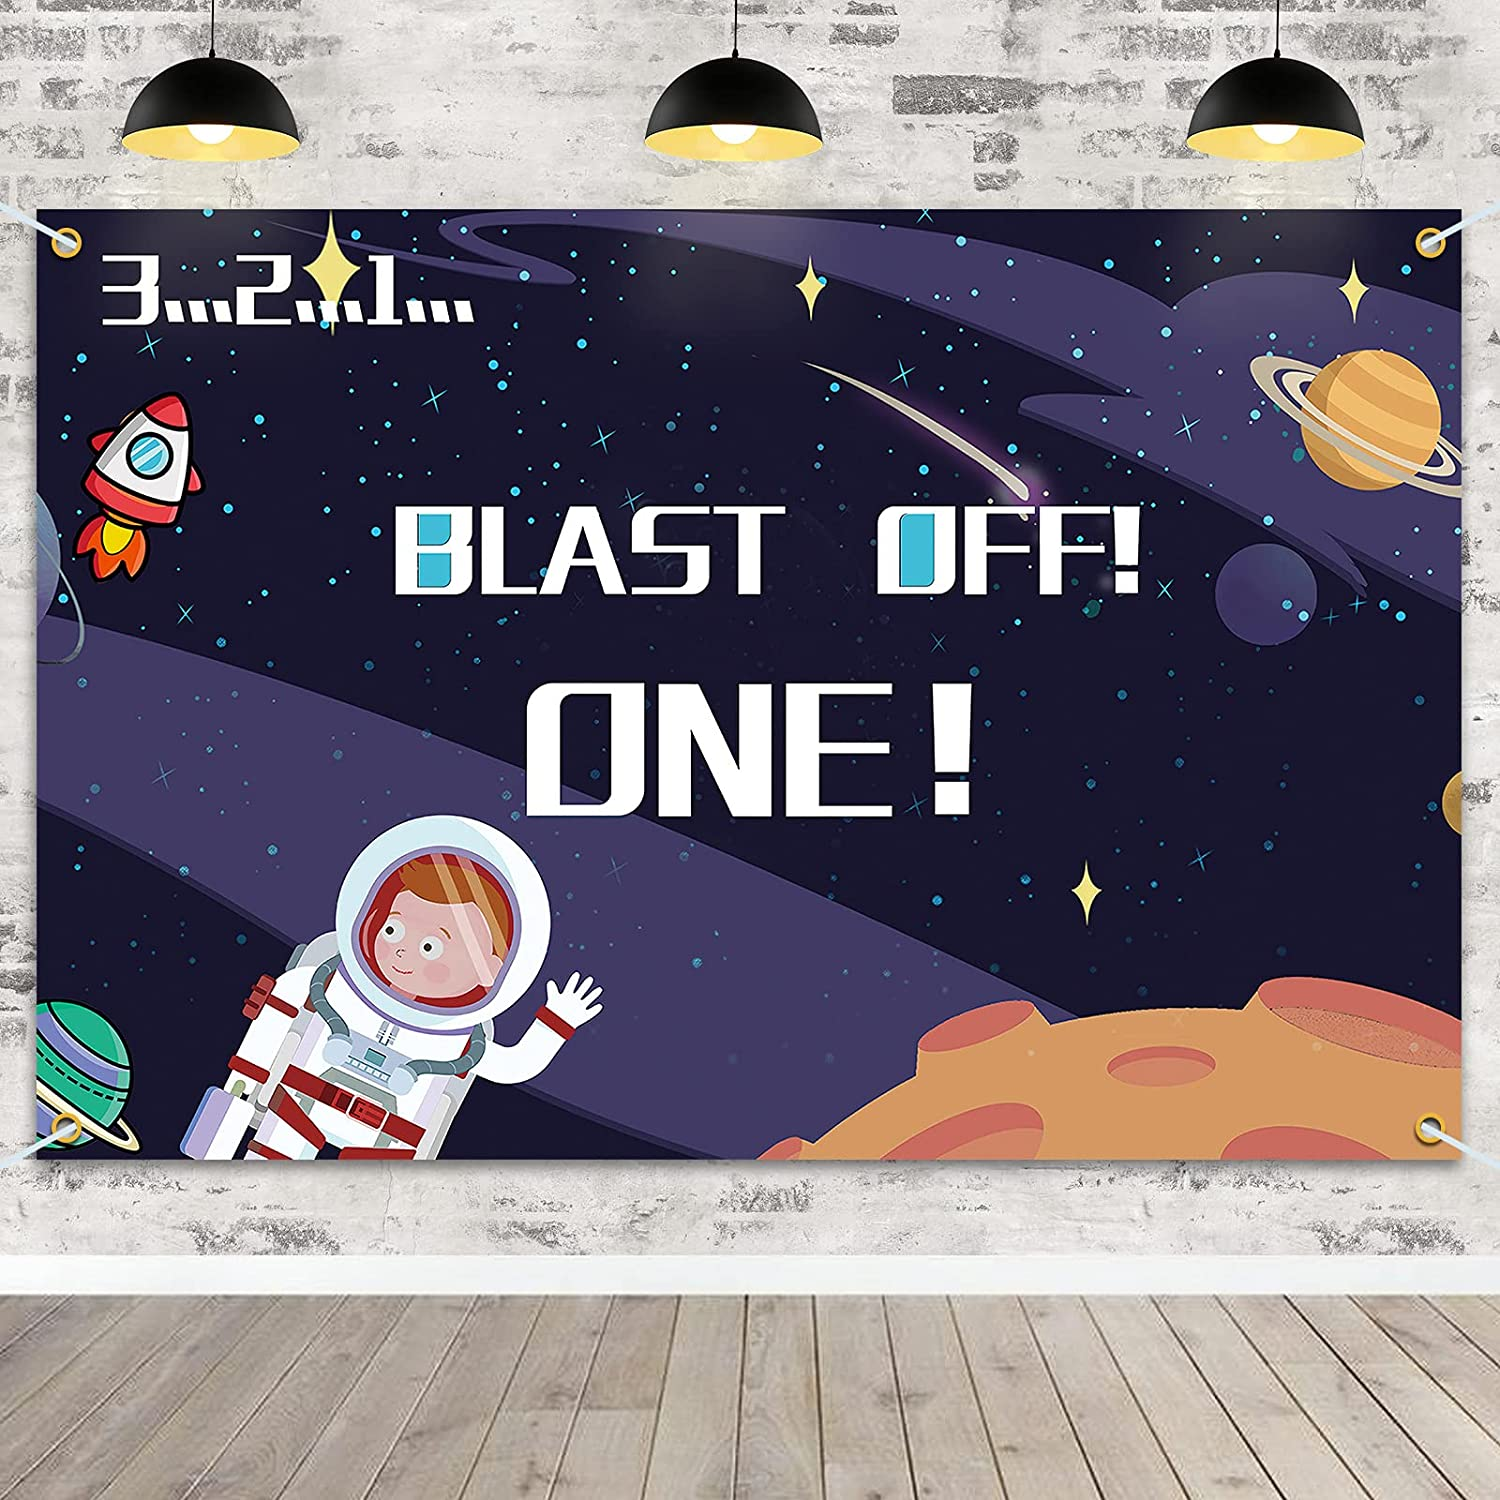 PAKBOOM Blast Off One Backdrop Banner Outer Space Theme Happy 1st First Birthday Party Decorations Supplies for Kids Decor – Blue 3.9 x 5.9ft